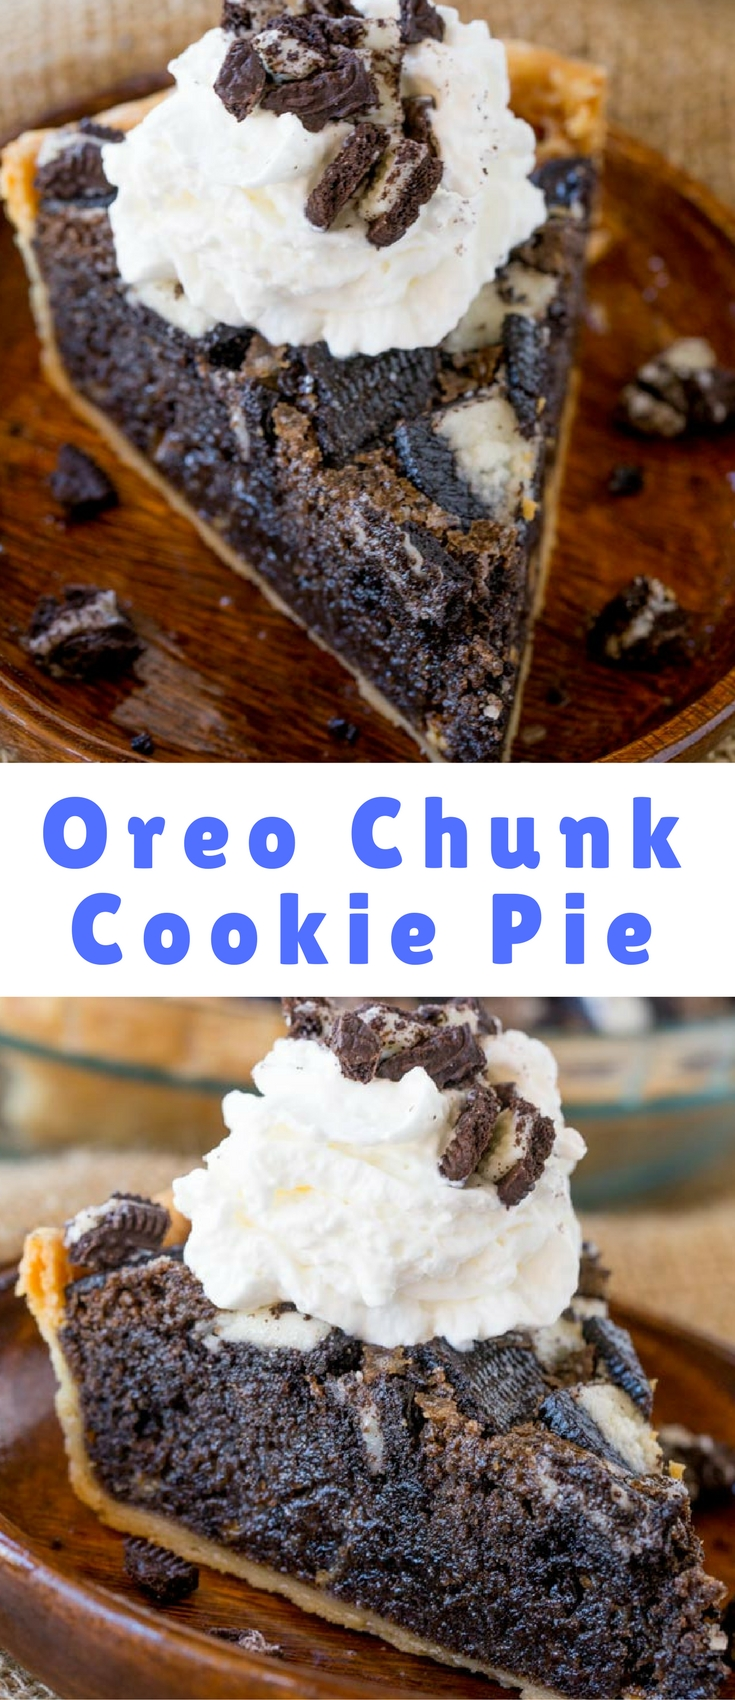 Oreo Chunk Cookie Pie tastes like a delicious, warm, Oreo chunk cookie baked into a buttery crisp pie crust that's half pie and half fresh baked cookie! This recipe is from Dinner, then Dessert. Be sure to scroll down for the direct recipe link.